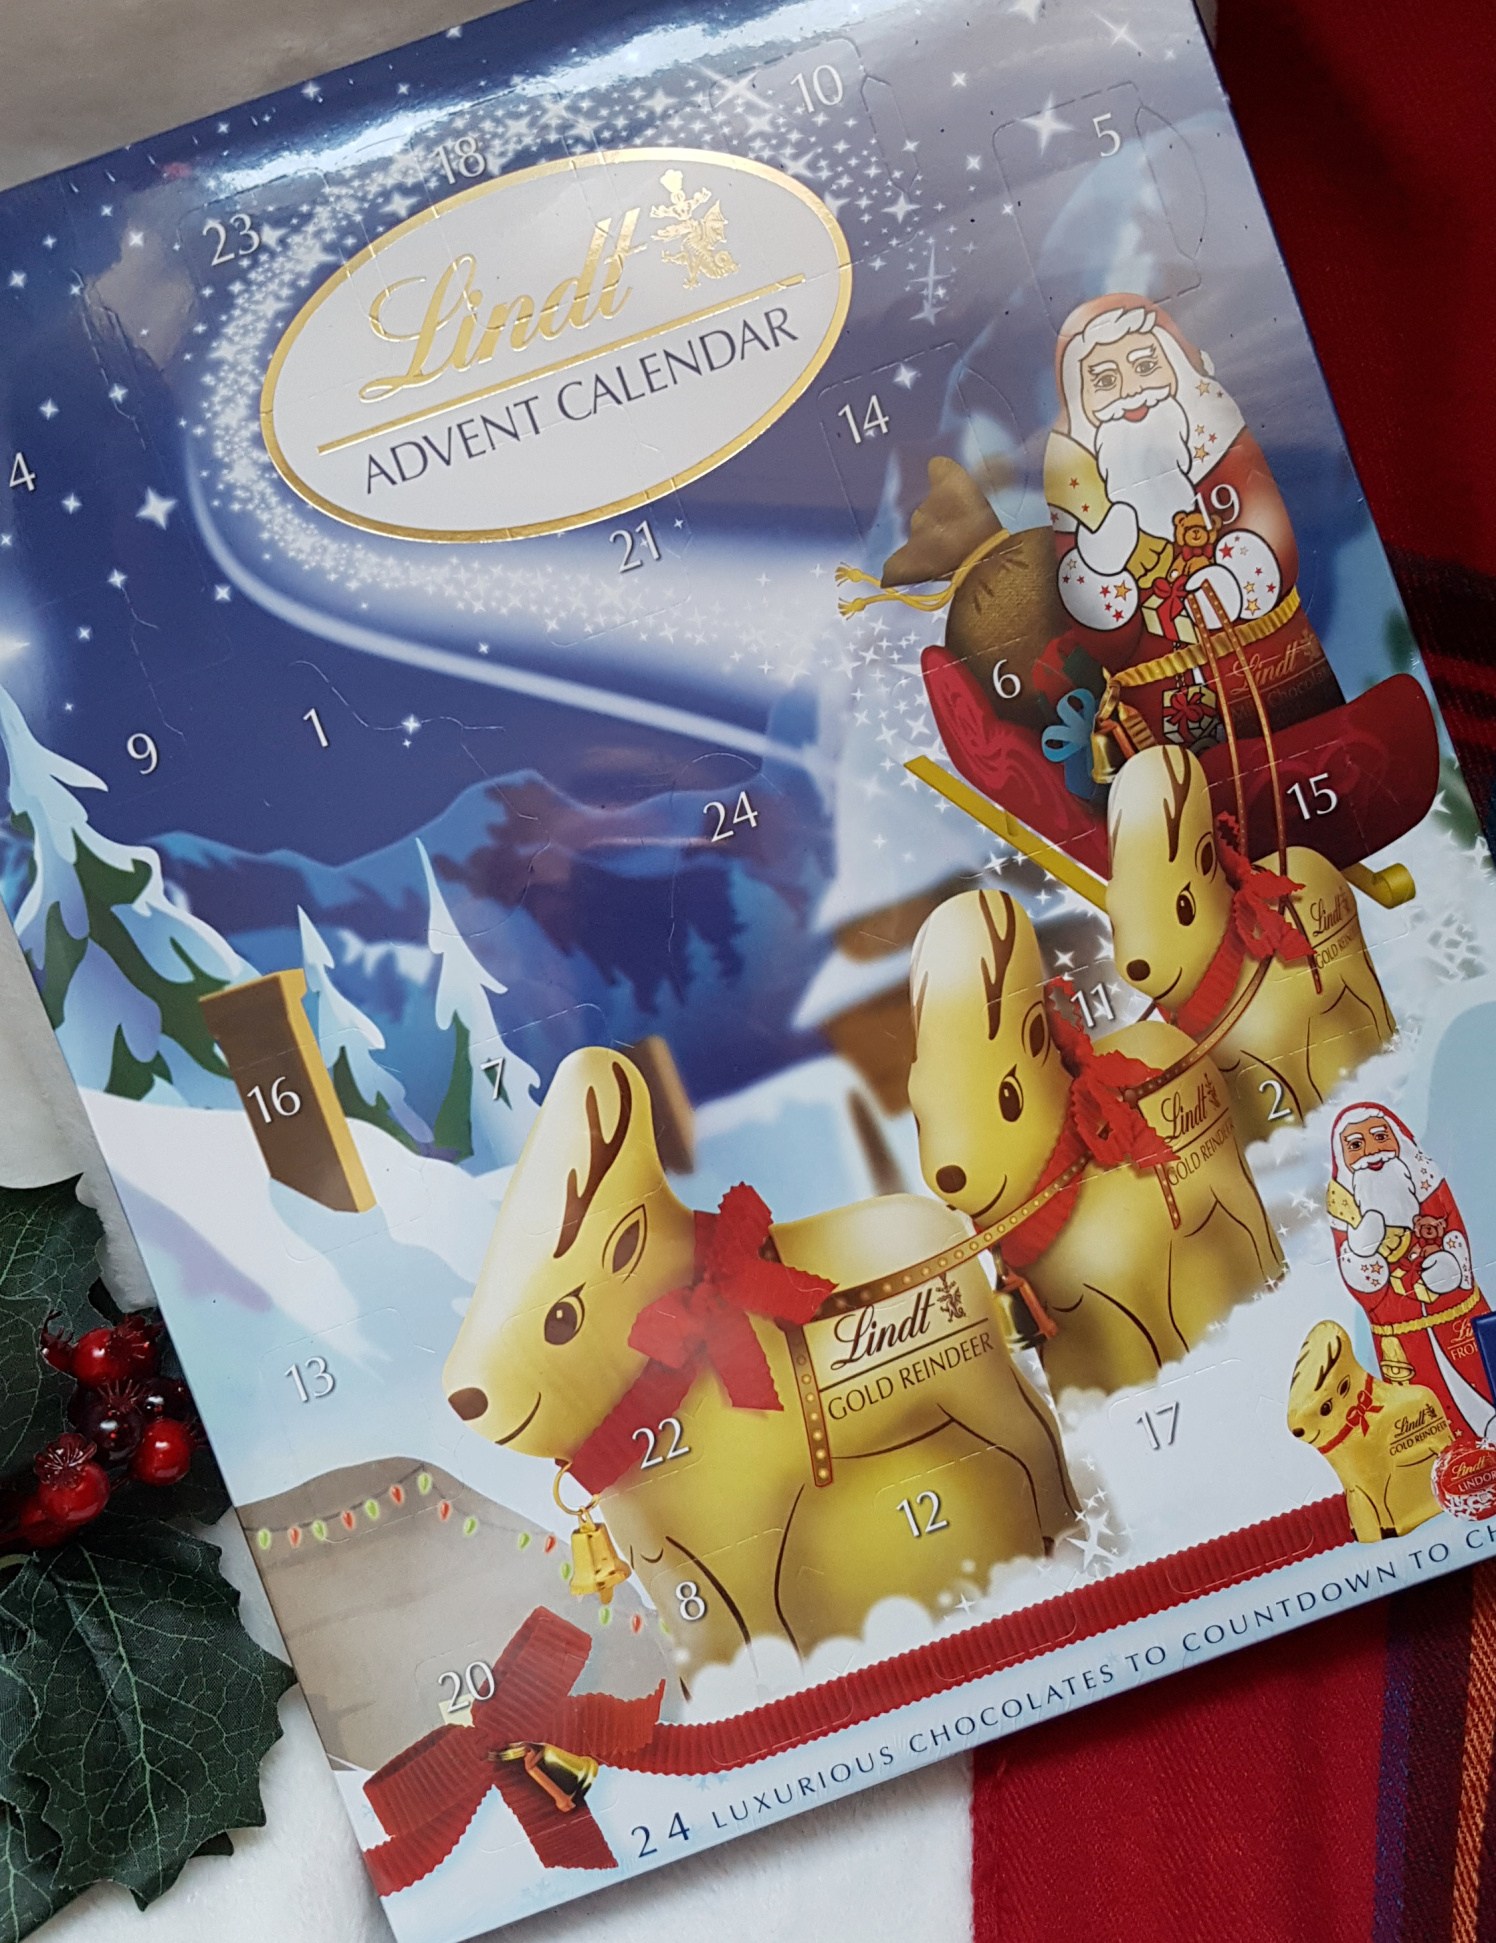 lindt advent calenadr.jpeg